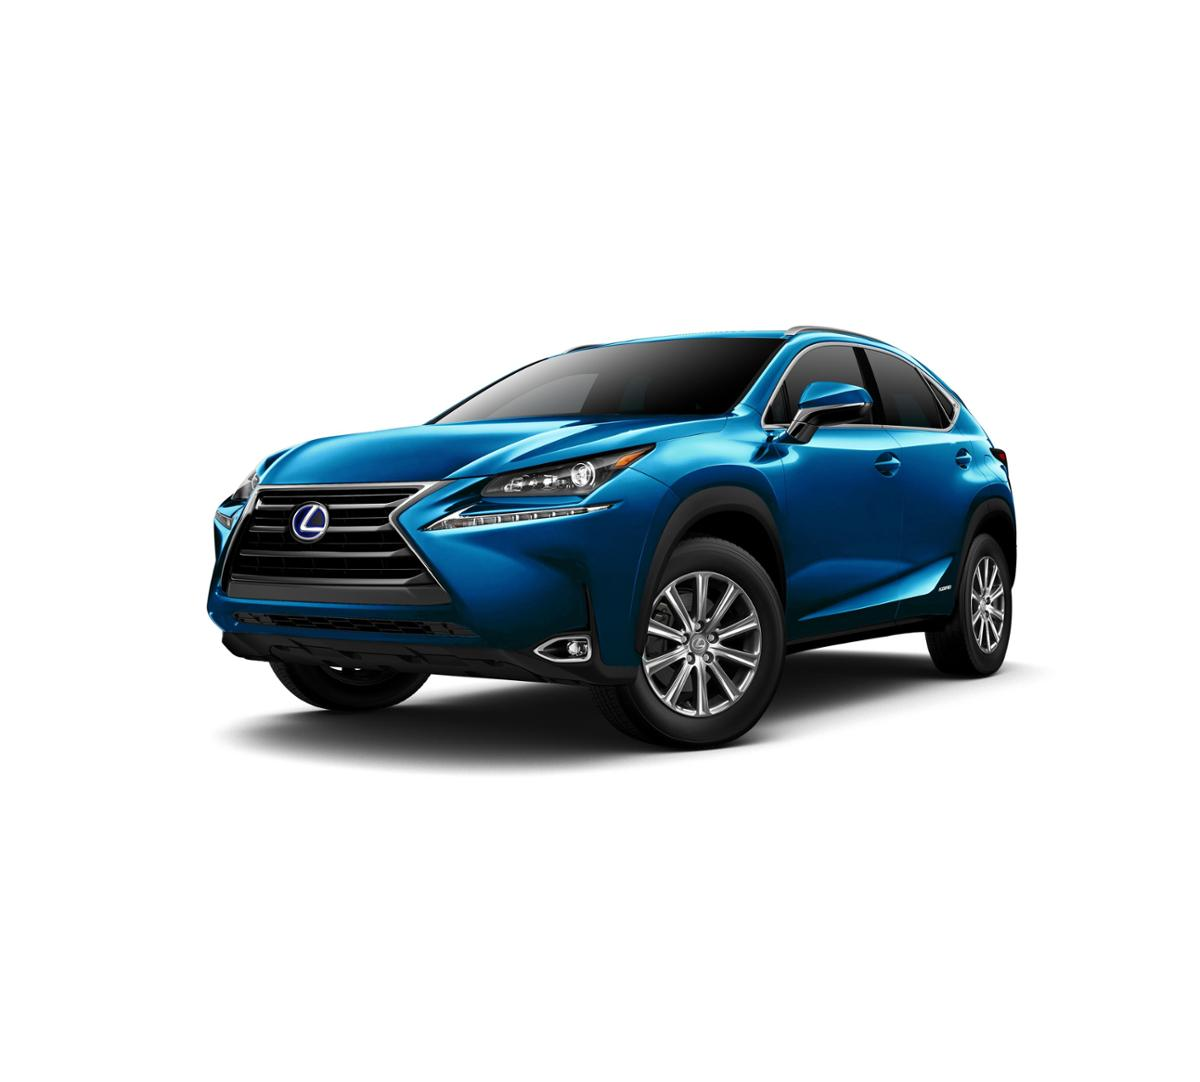 new blue vortex metallic 2017 lexus nx 300h for sale fremont ca magnussen lexus of fremont. Black Bedroom Furniture Sets. Home Design Ideas